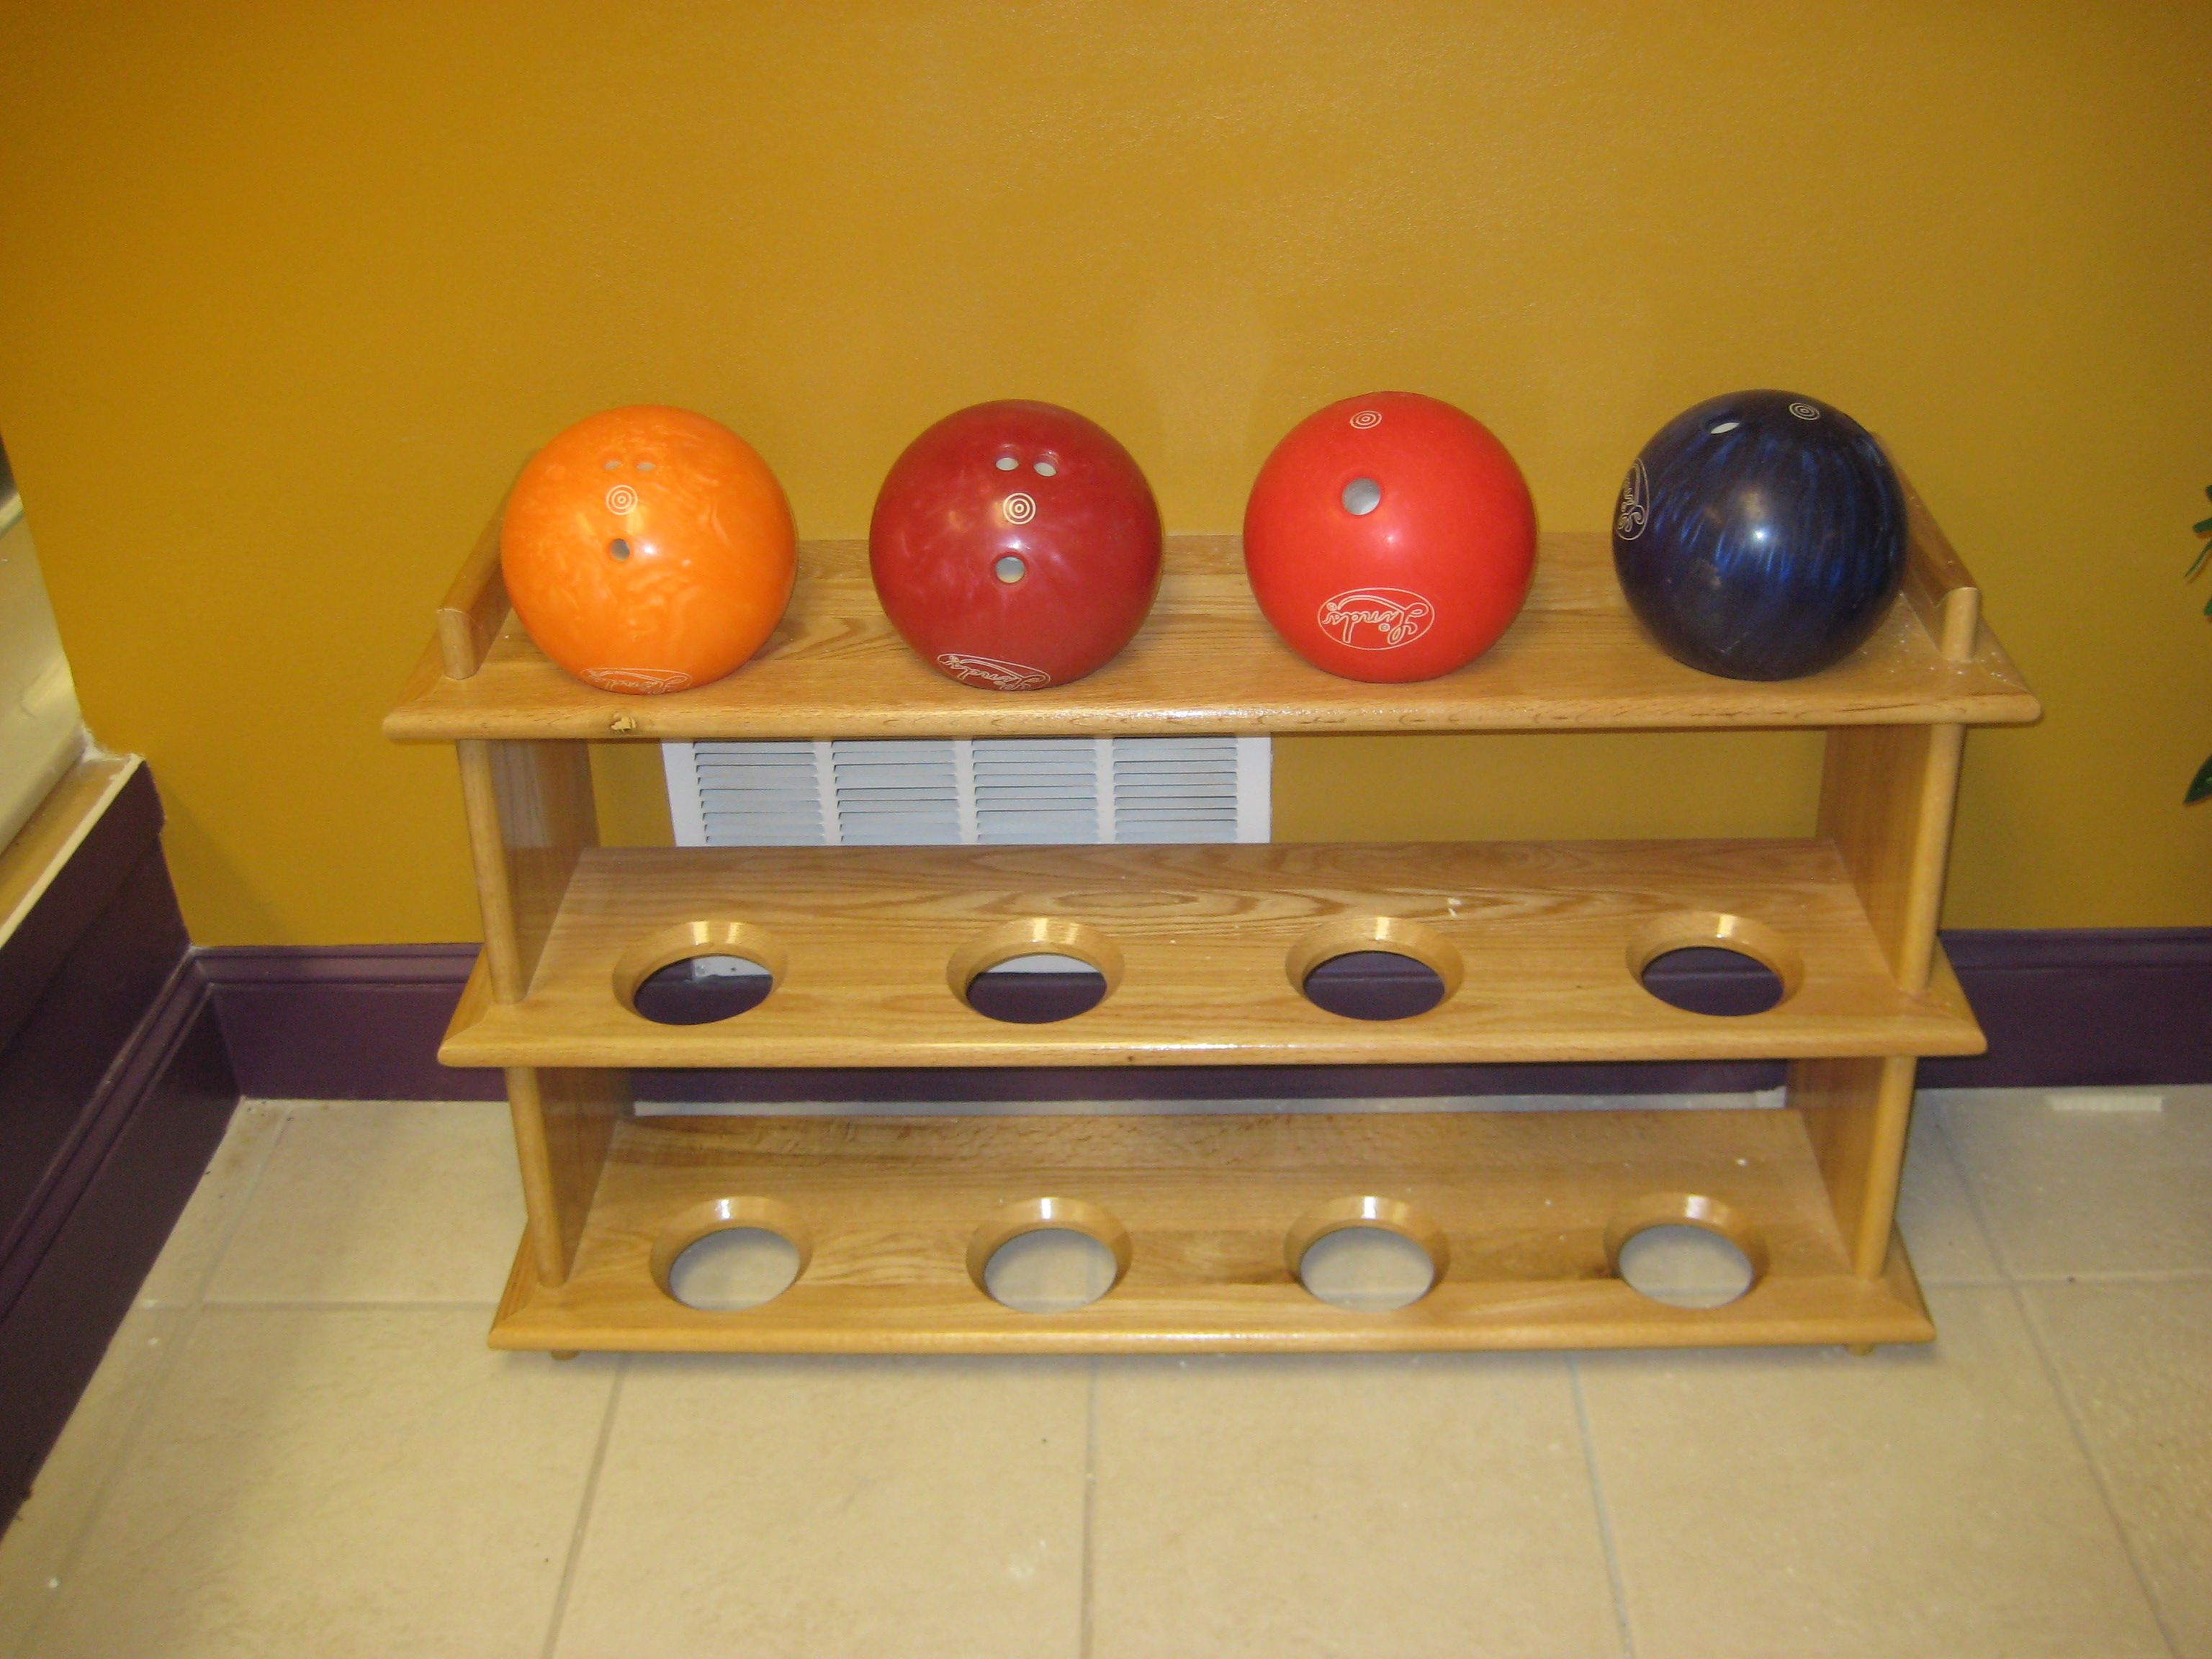 Homemade Bowling Ball Rack Use A Hole Saw To Cut 4 Inch Diameter Holes Then Router The Edges With Chamfer Bit